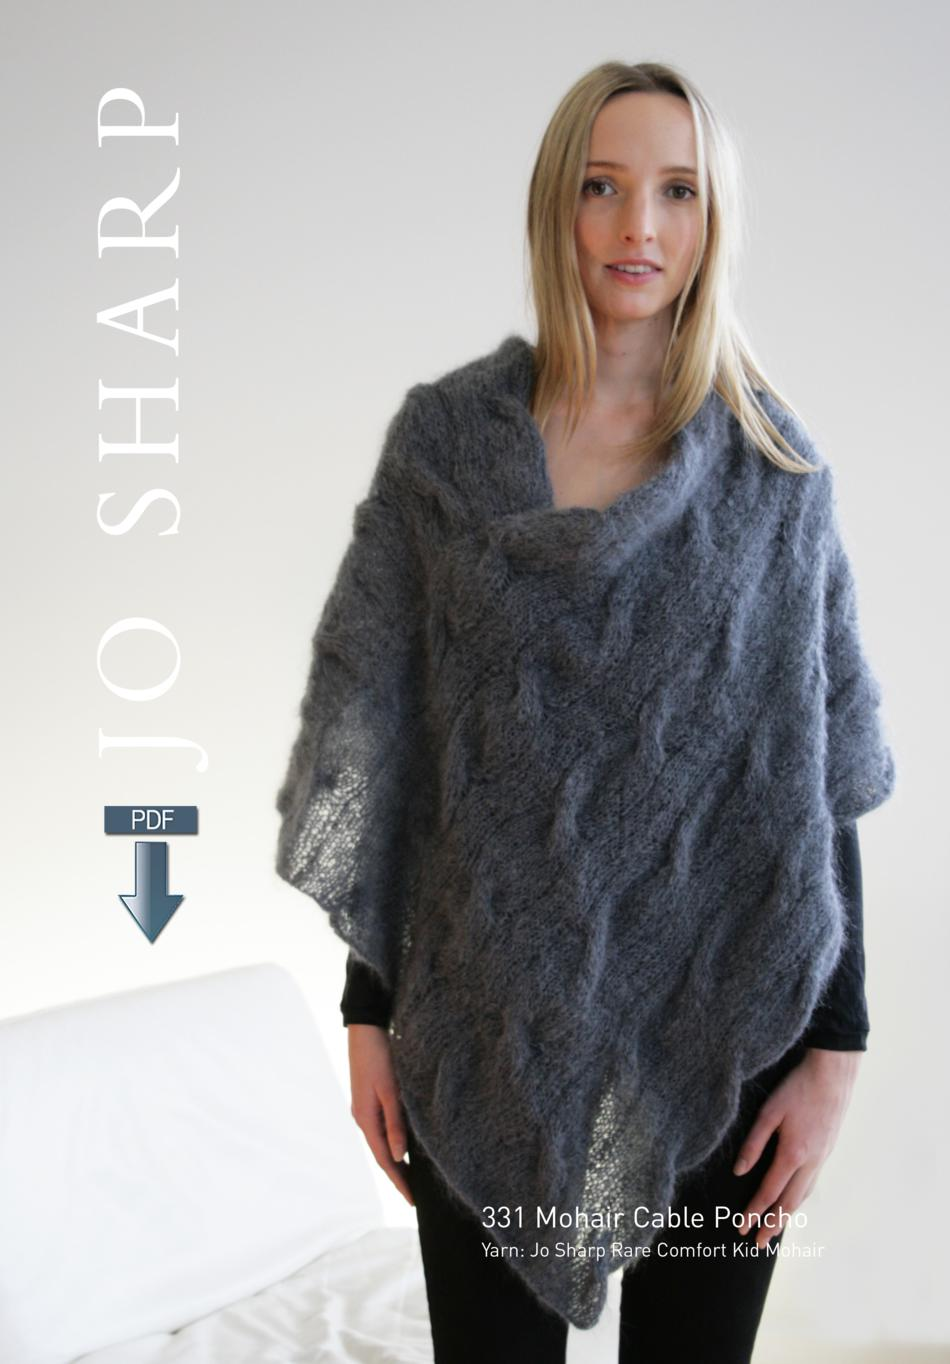 Jo sharp mohair cable poncho pattern pattern download knitting knitting patterns jo sharp mohair cable poncho pattern pattern download bankloansurffo Gallery